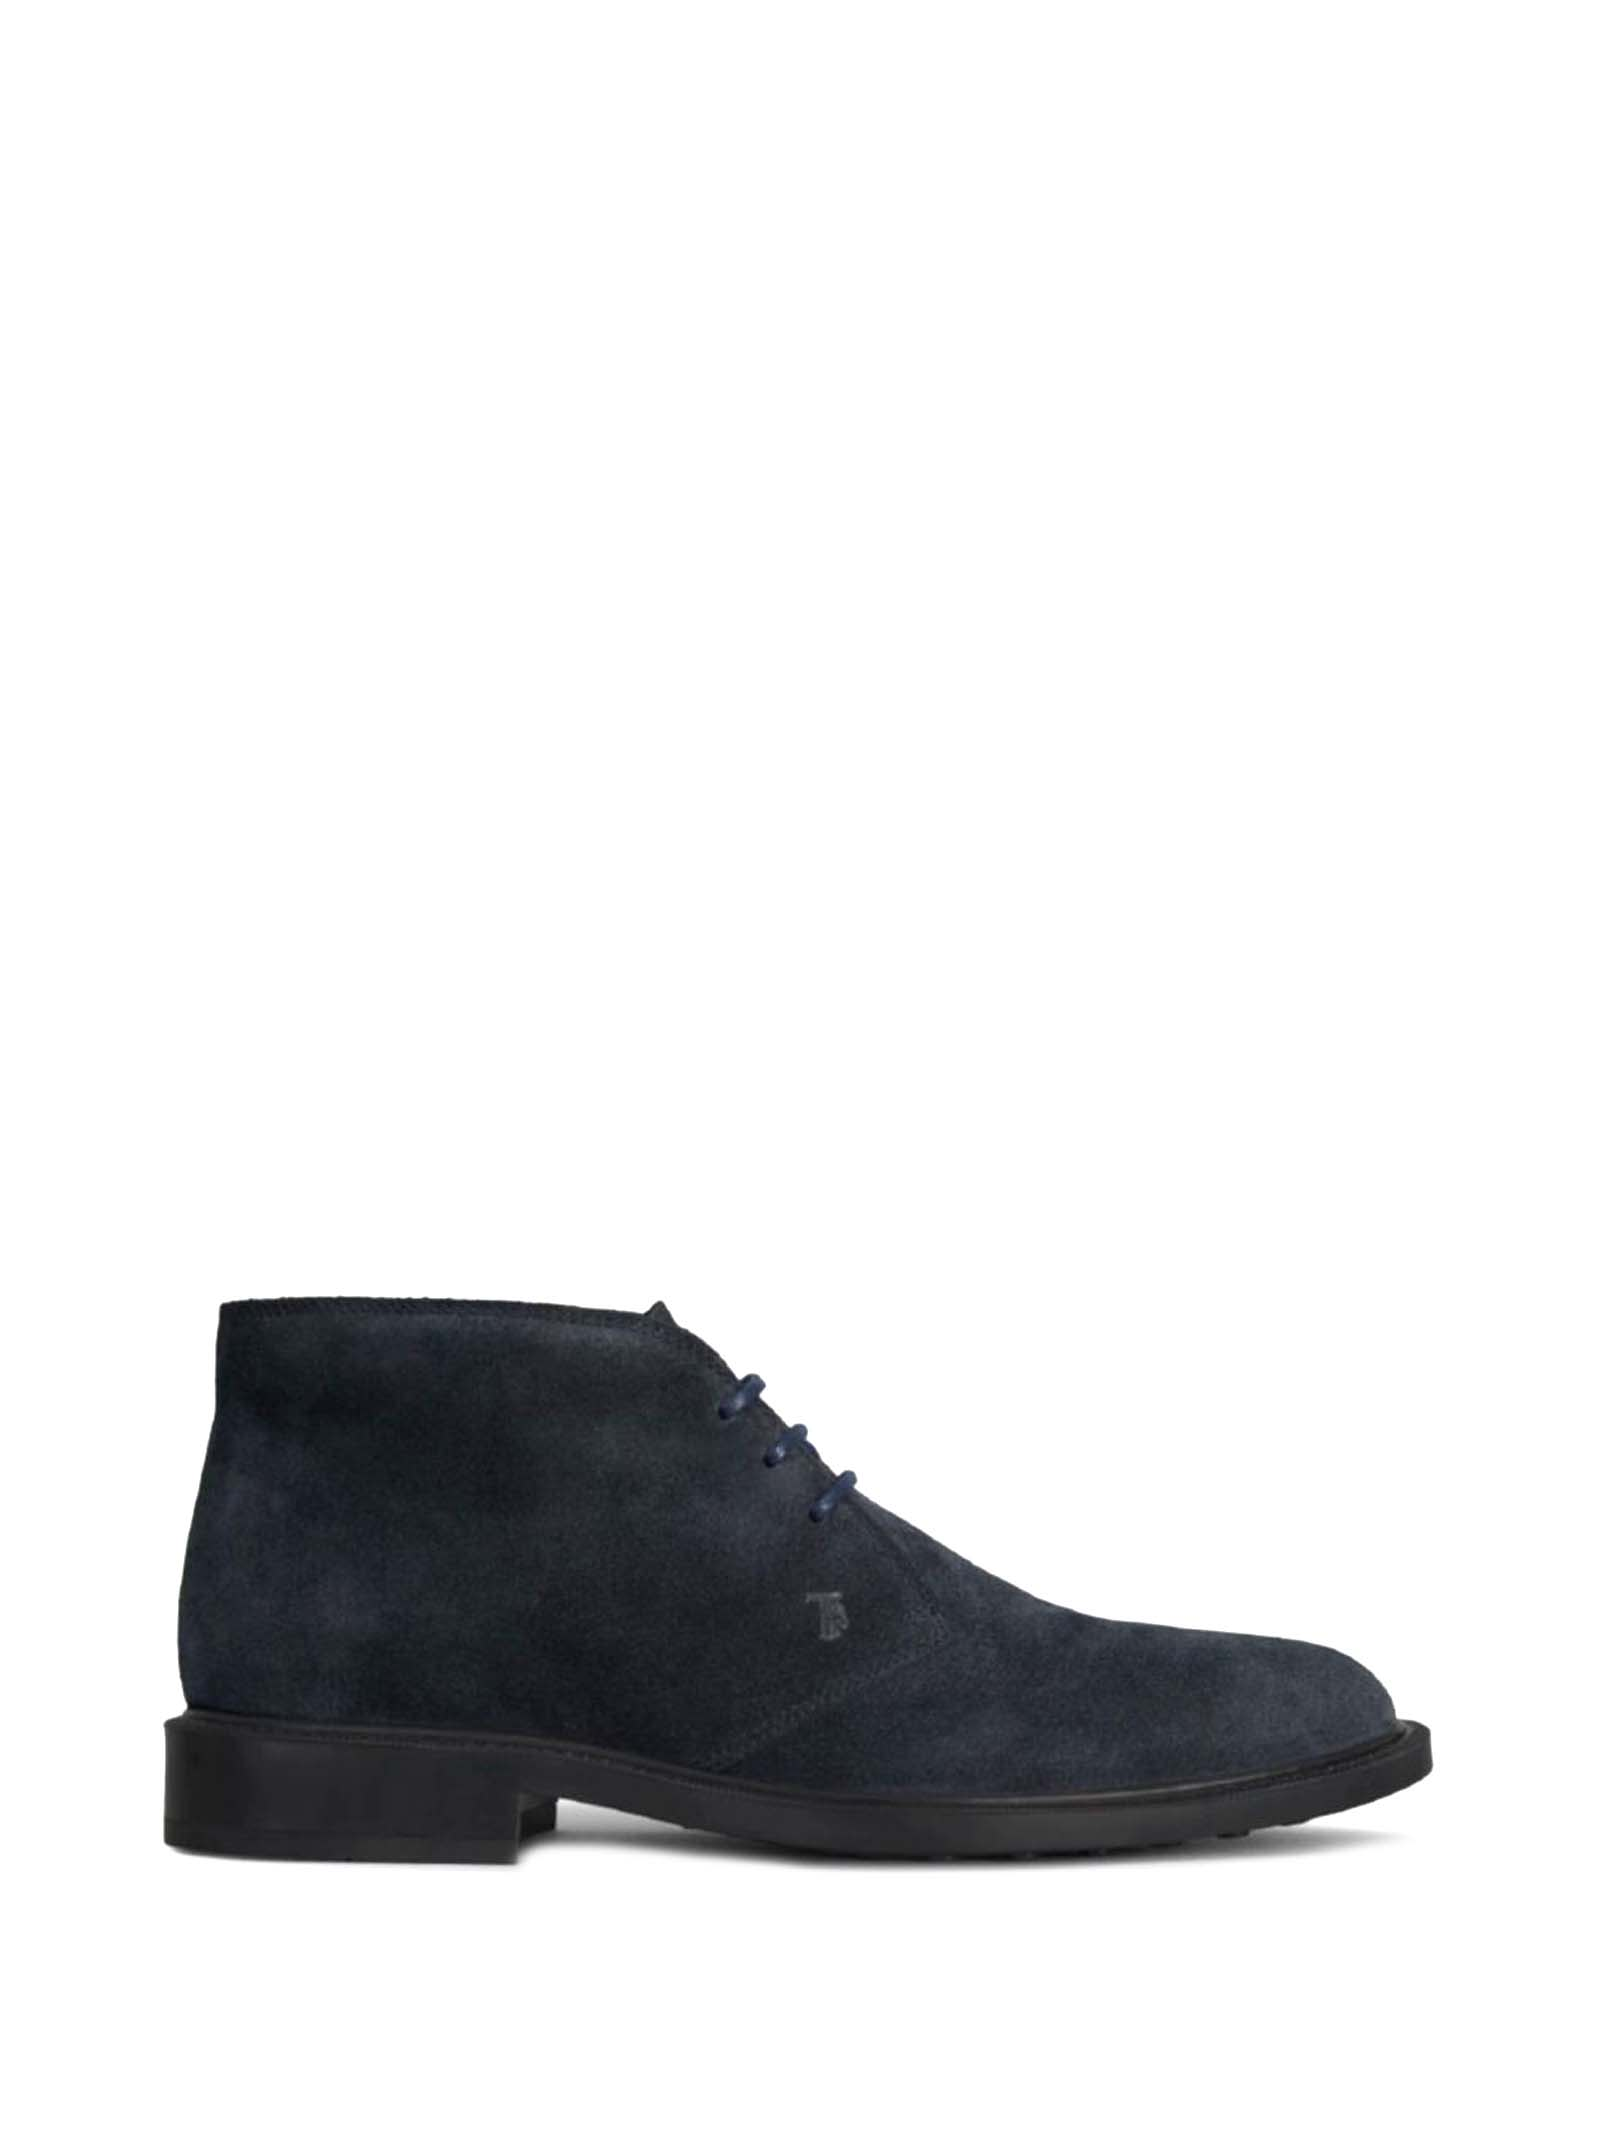 Tods Tods Suede Oxford Boots